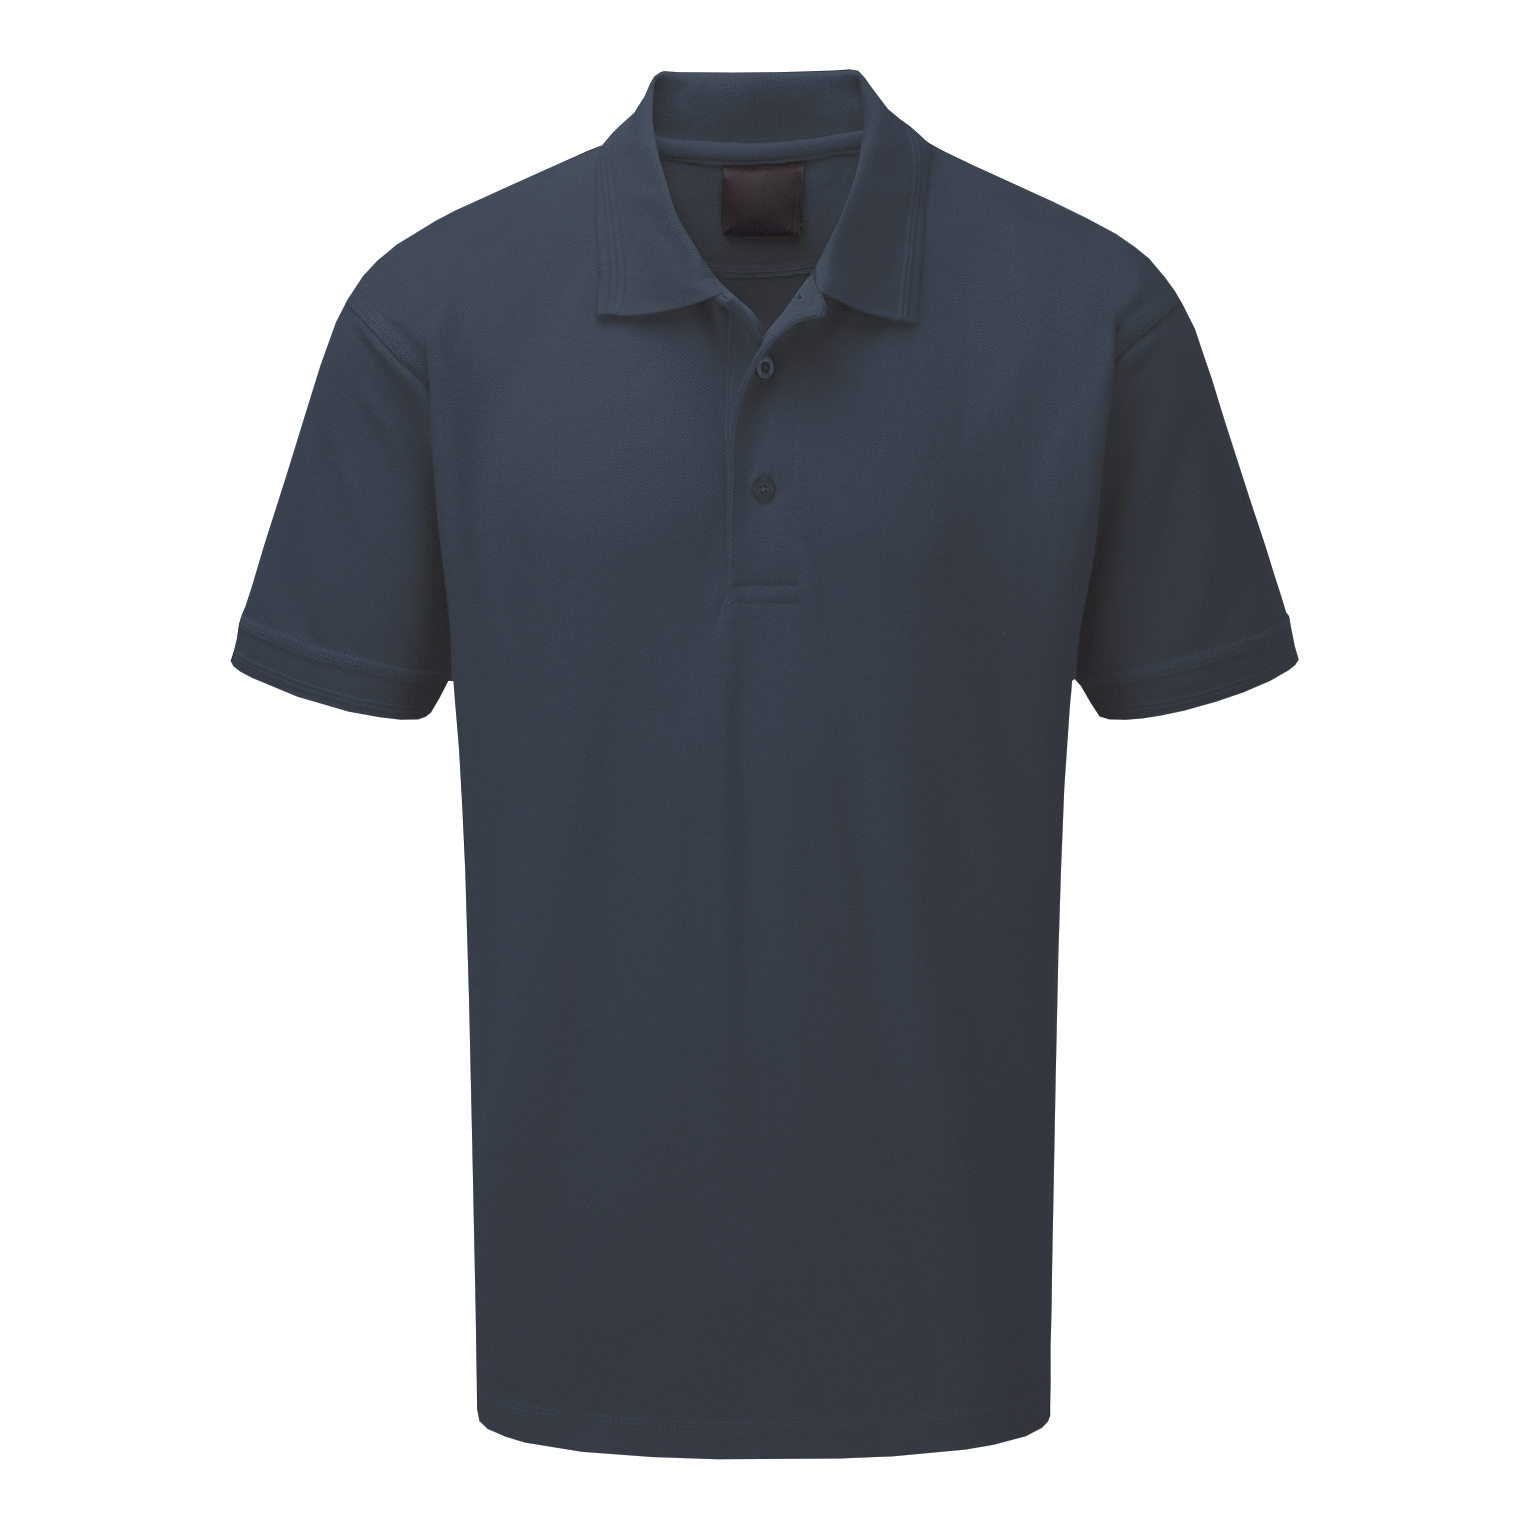 Premium Polo Triple Stitched 220gsm Medium Graphite